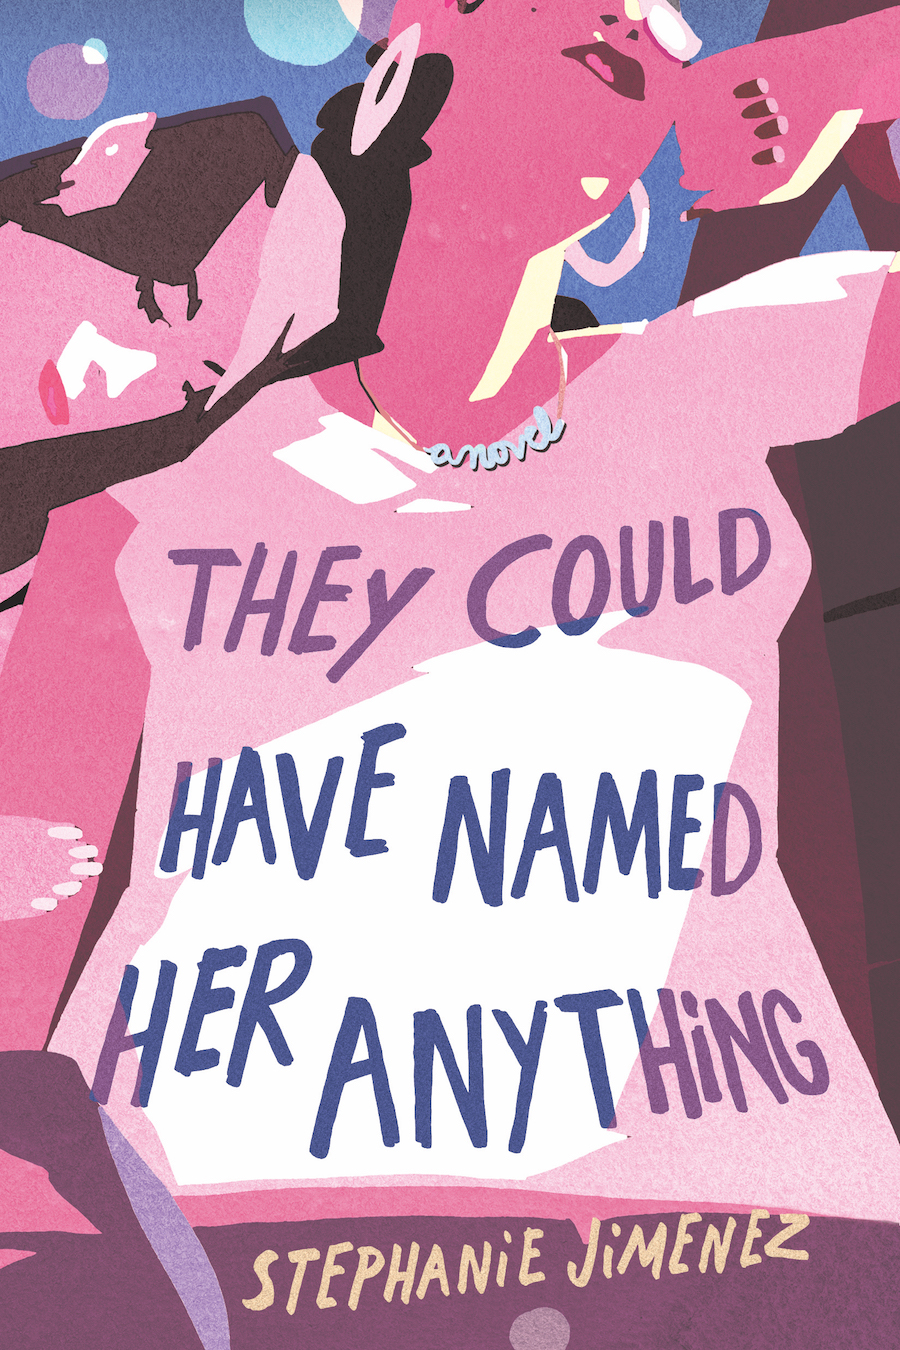 THEY COULD HAVE NAMED HER ANYTHING - Stephanie Jimenez